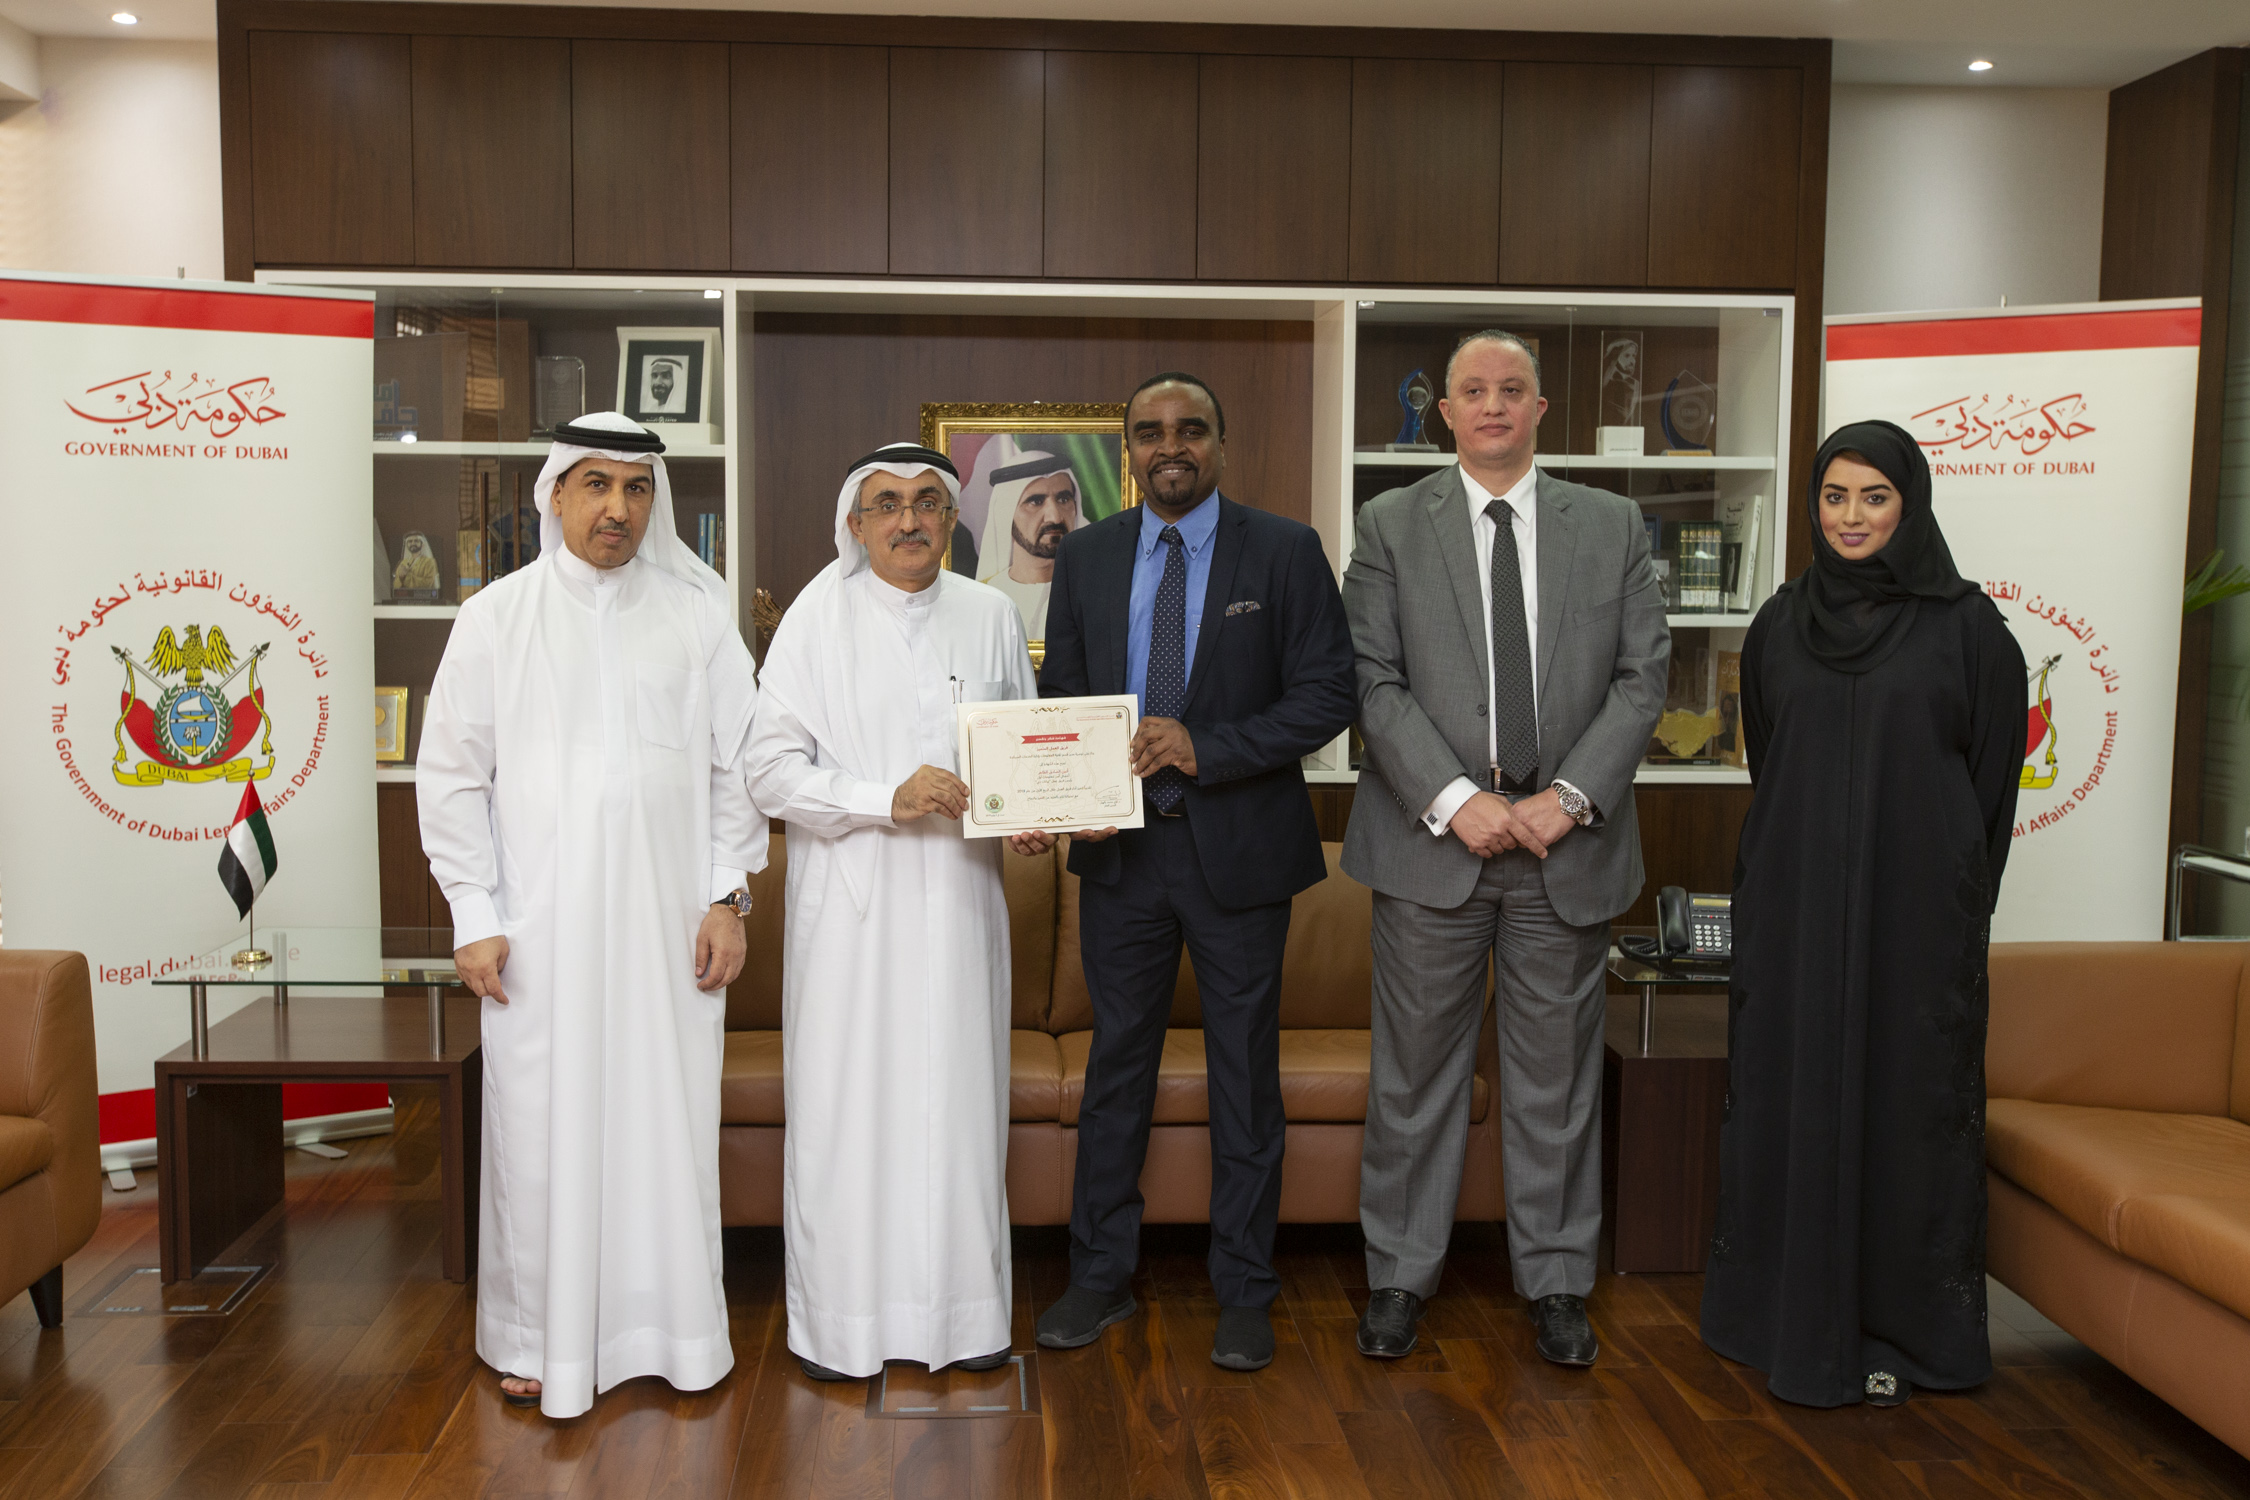 His Excellency Dr. Lowai Belhoul, Director General of Legal Affairs Department, honoured a number of distinguished employees for the third quarter of 2019, as part of the Department's commitment to foster a spirit of excellence and positive competition